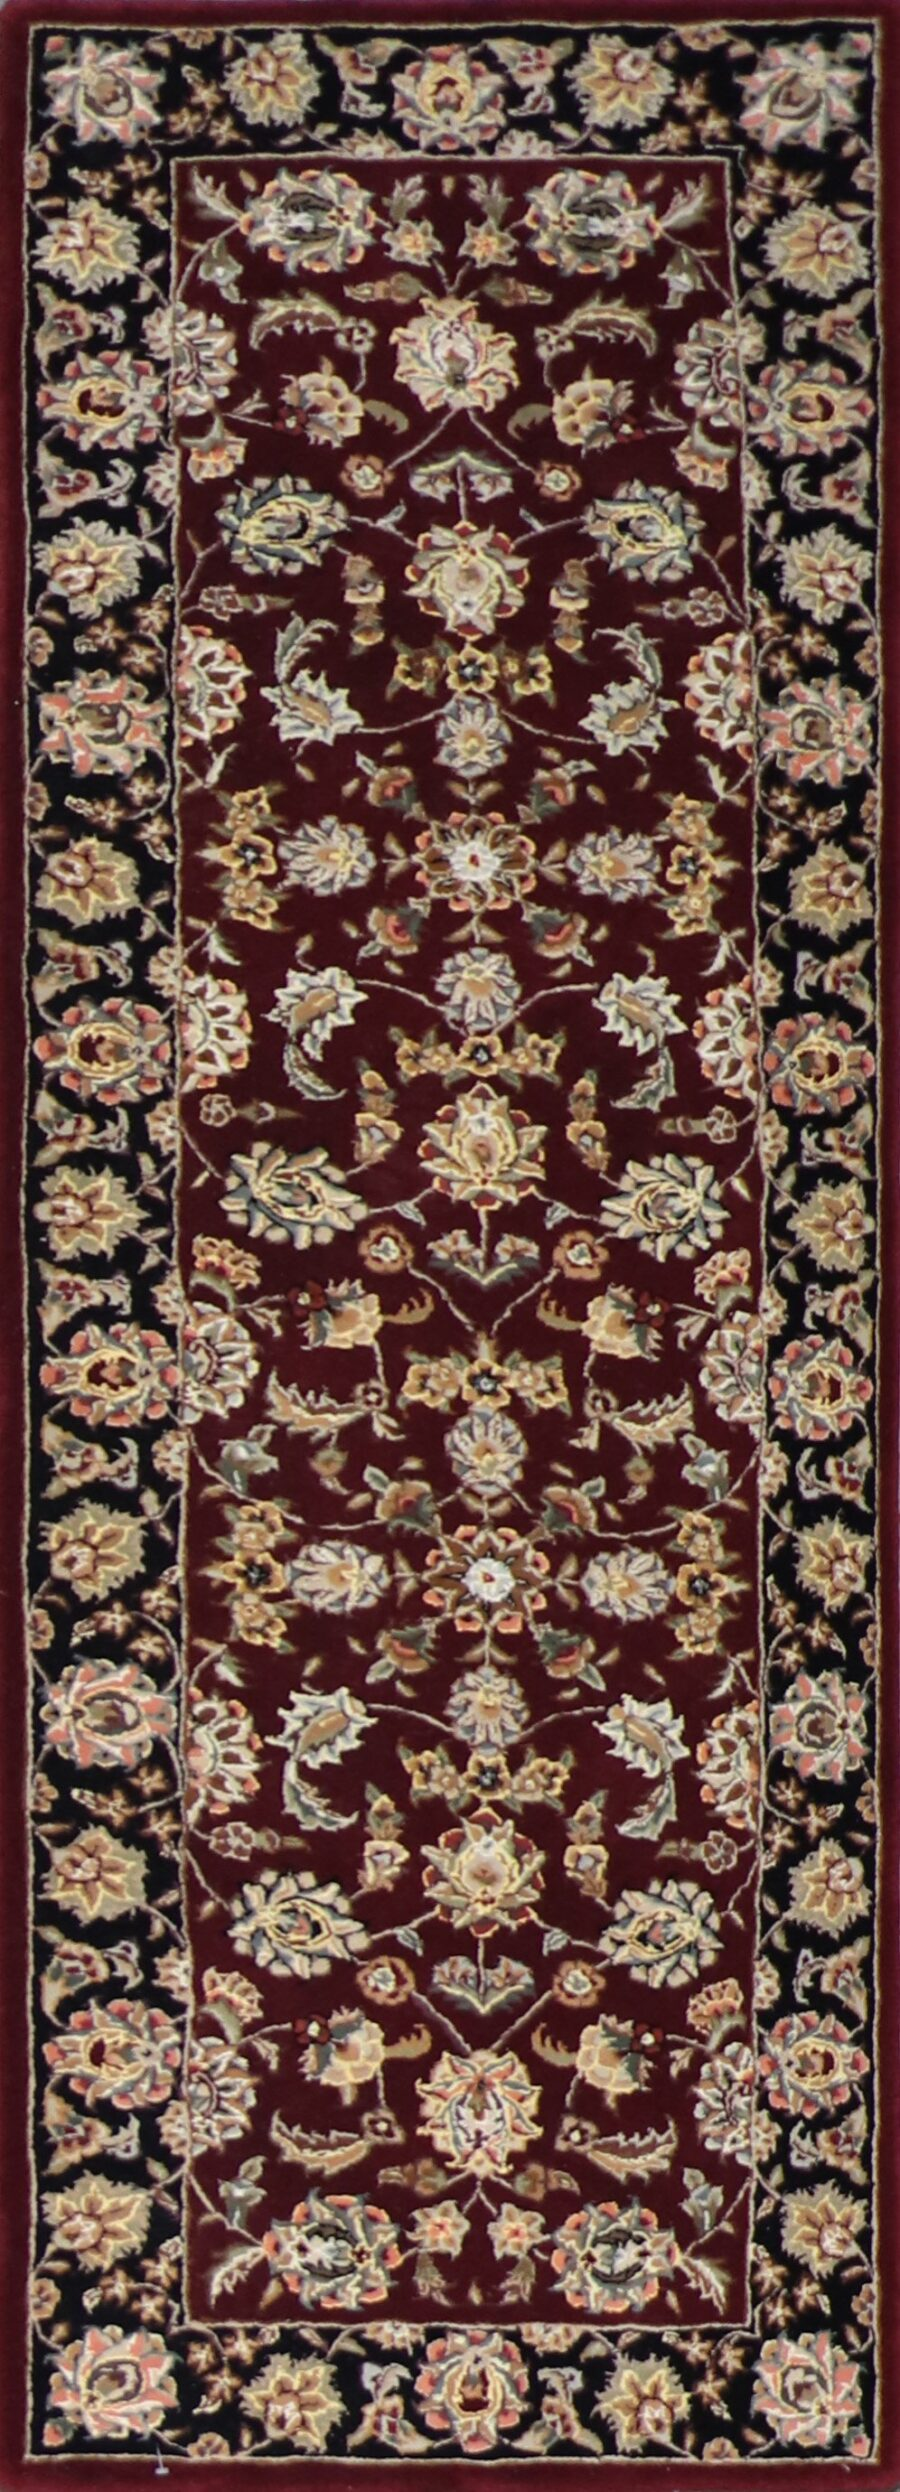 """2'7""""x7'11"""" Decorative Burgundy Wool & Silk Hand-Tufted Rug - Direct Rug Import 